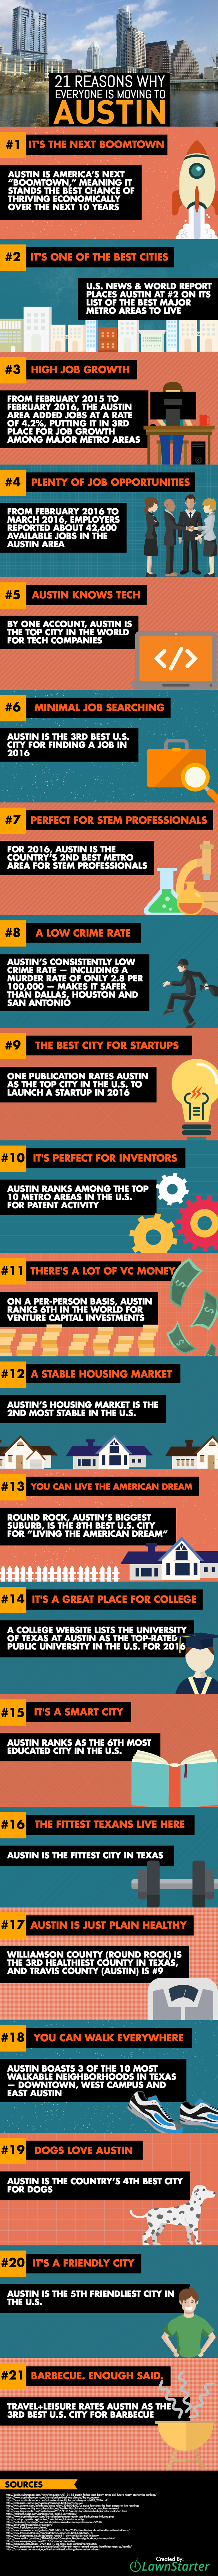 21 Reasons Everyone is Moving to Austin, TX